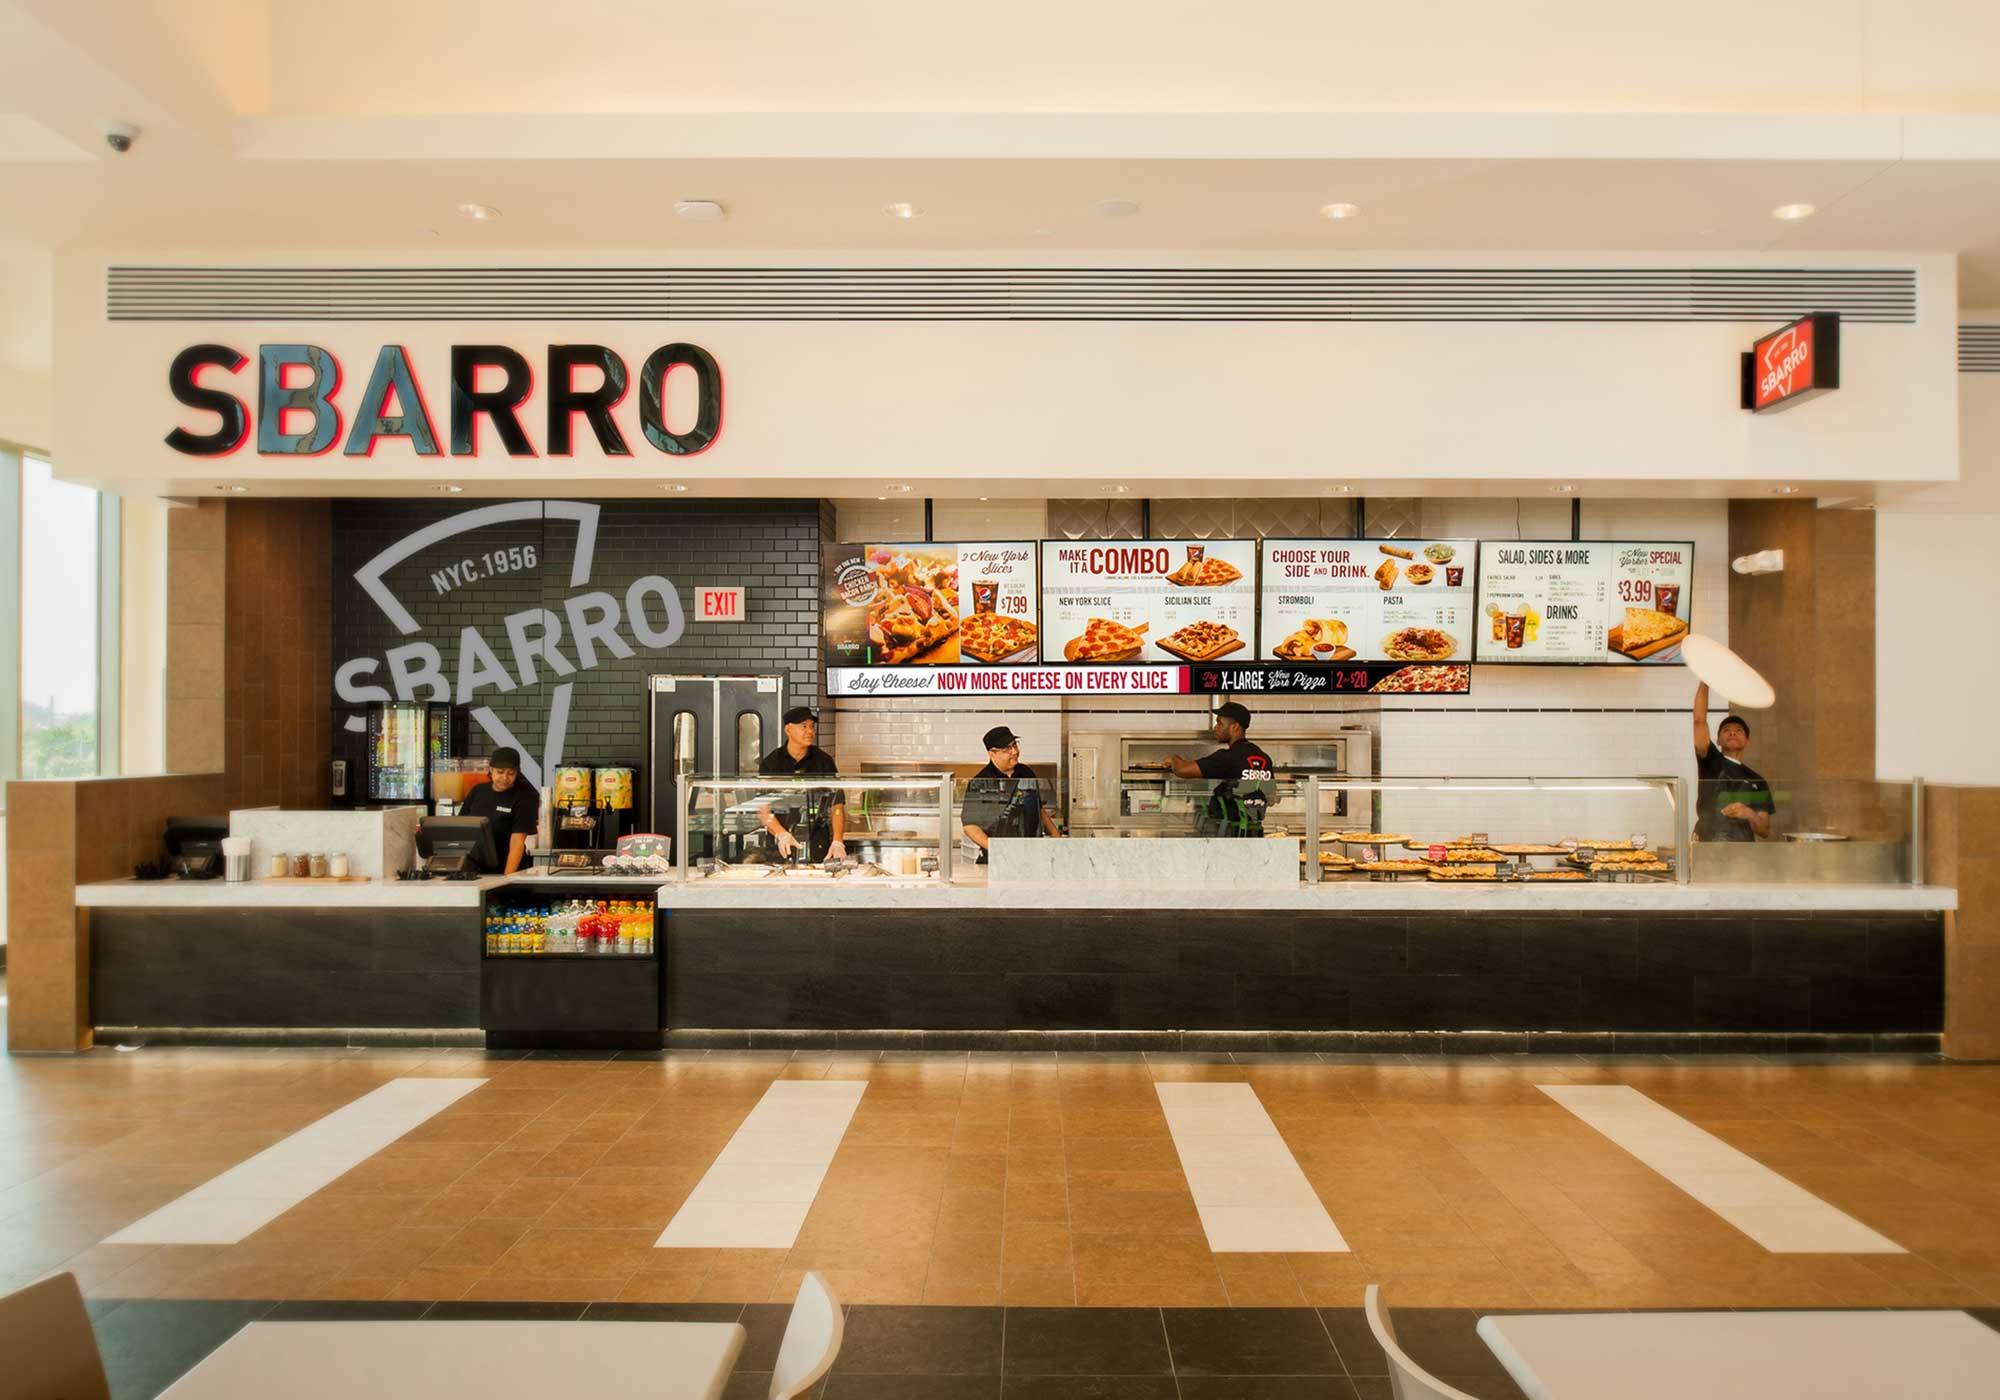 Sbarro storefront with an employee spinning pizza dough